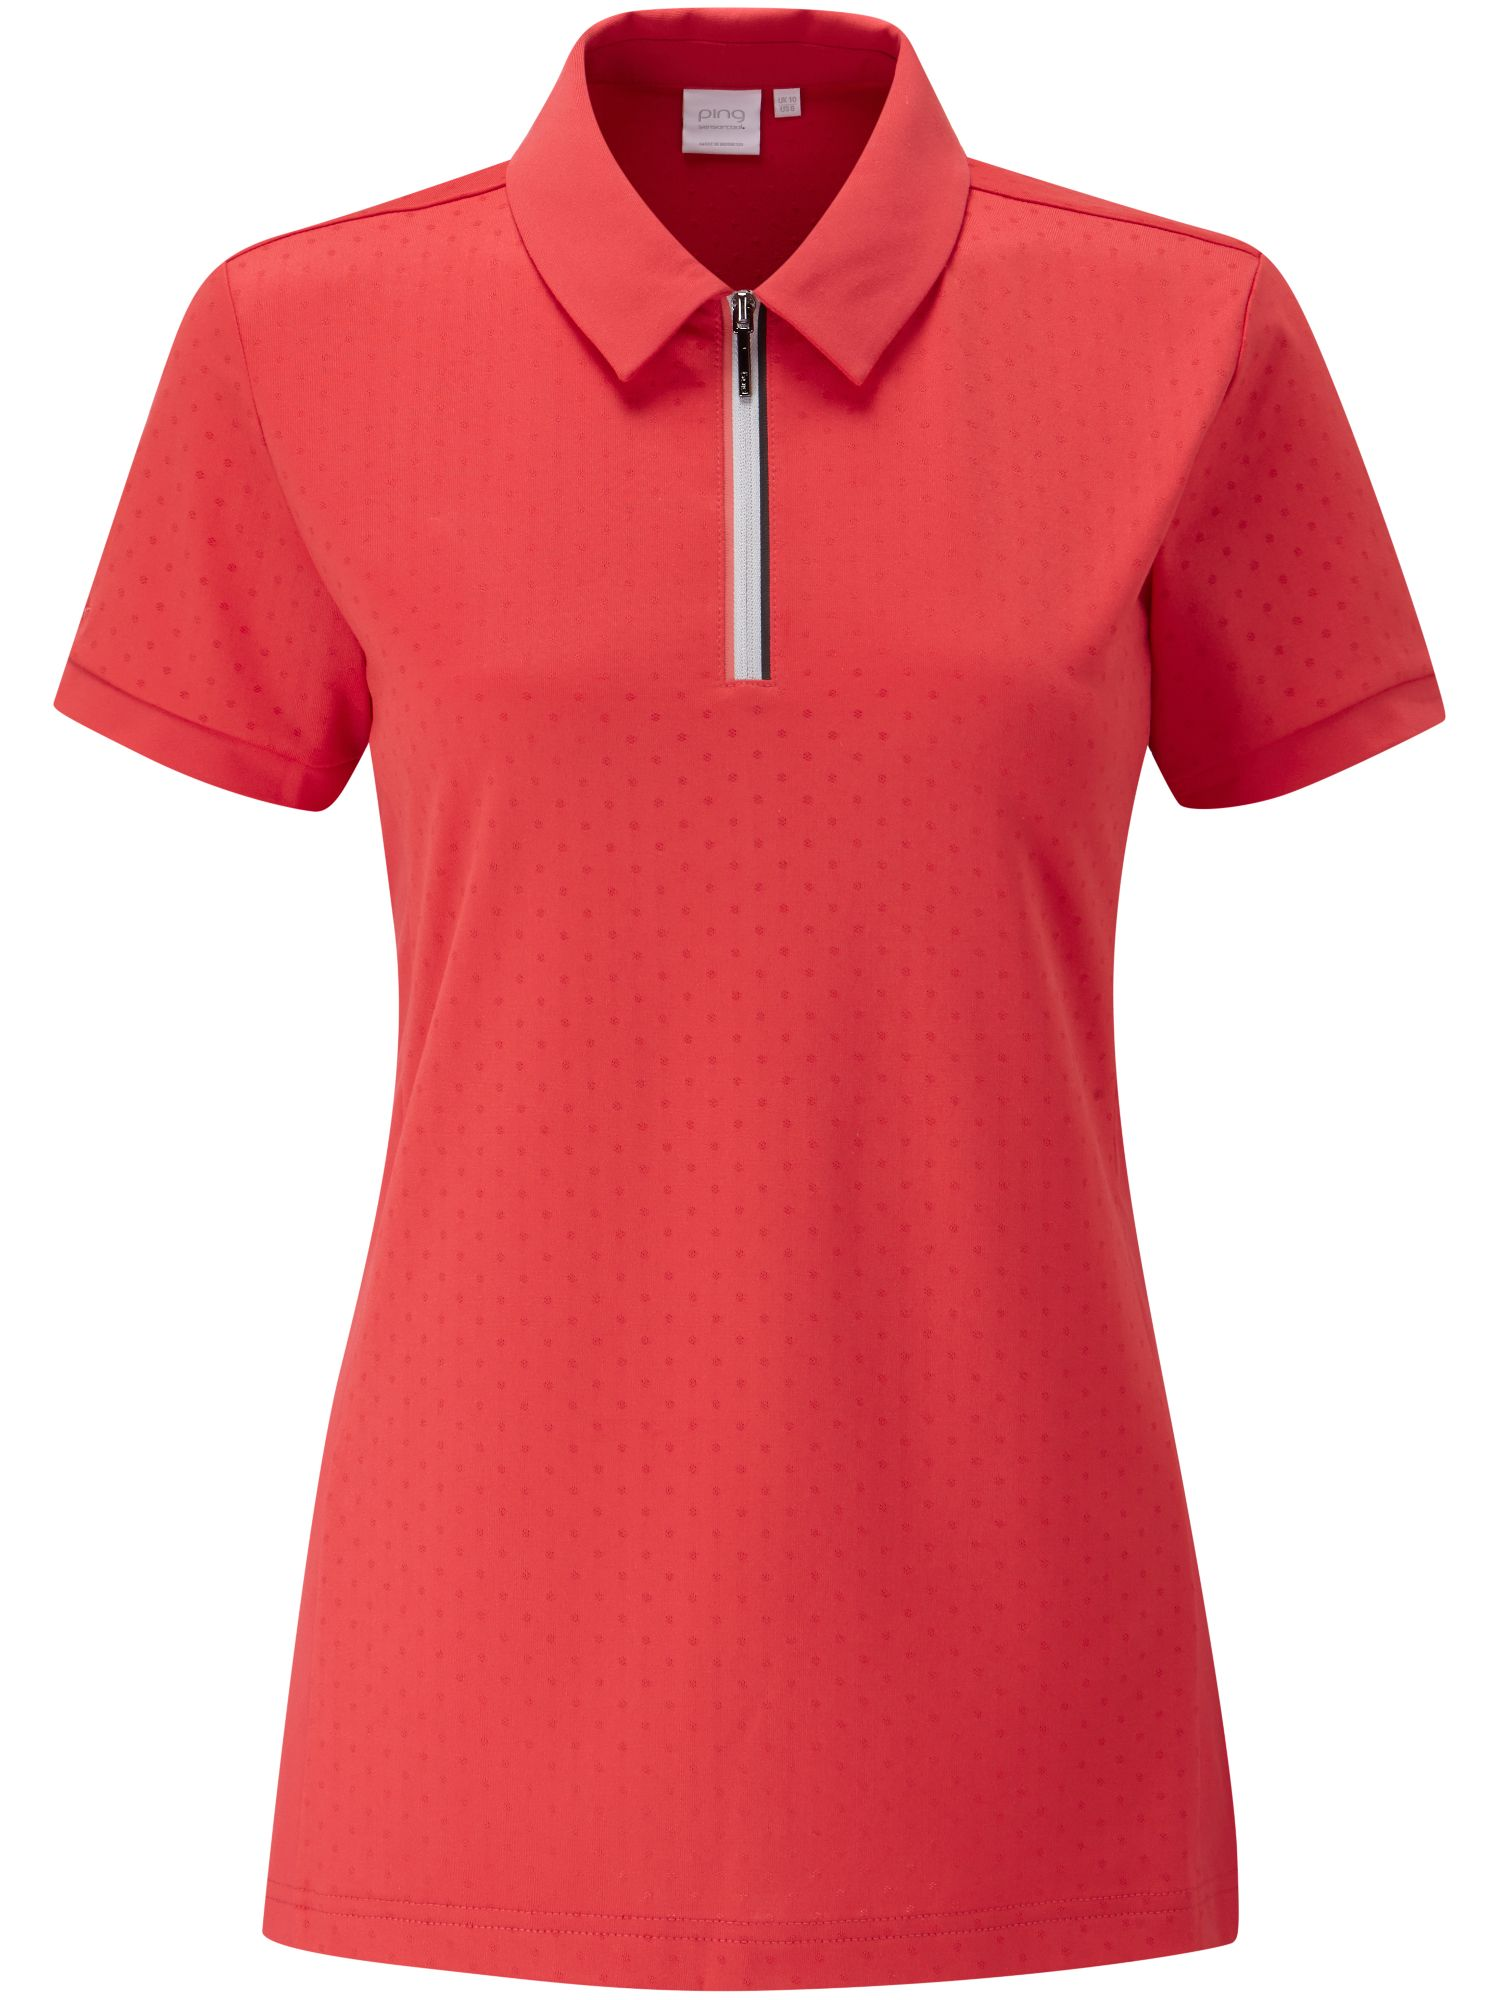 Ping Noa Short Sleeve Polo, Red